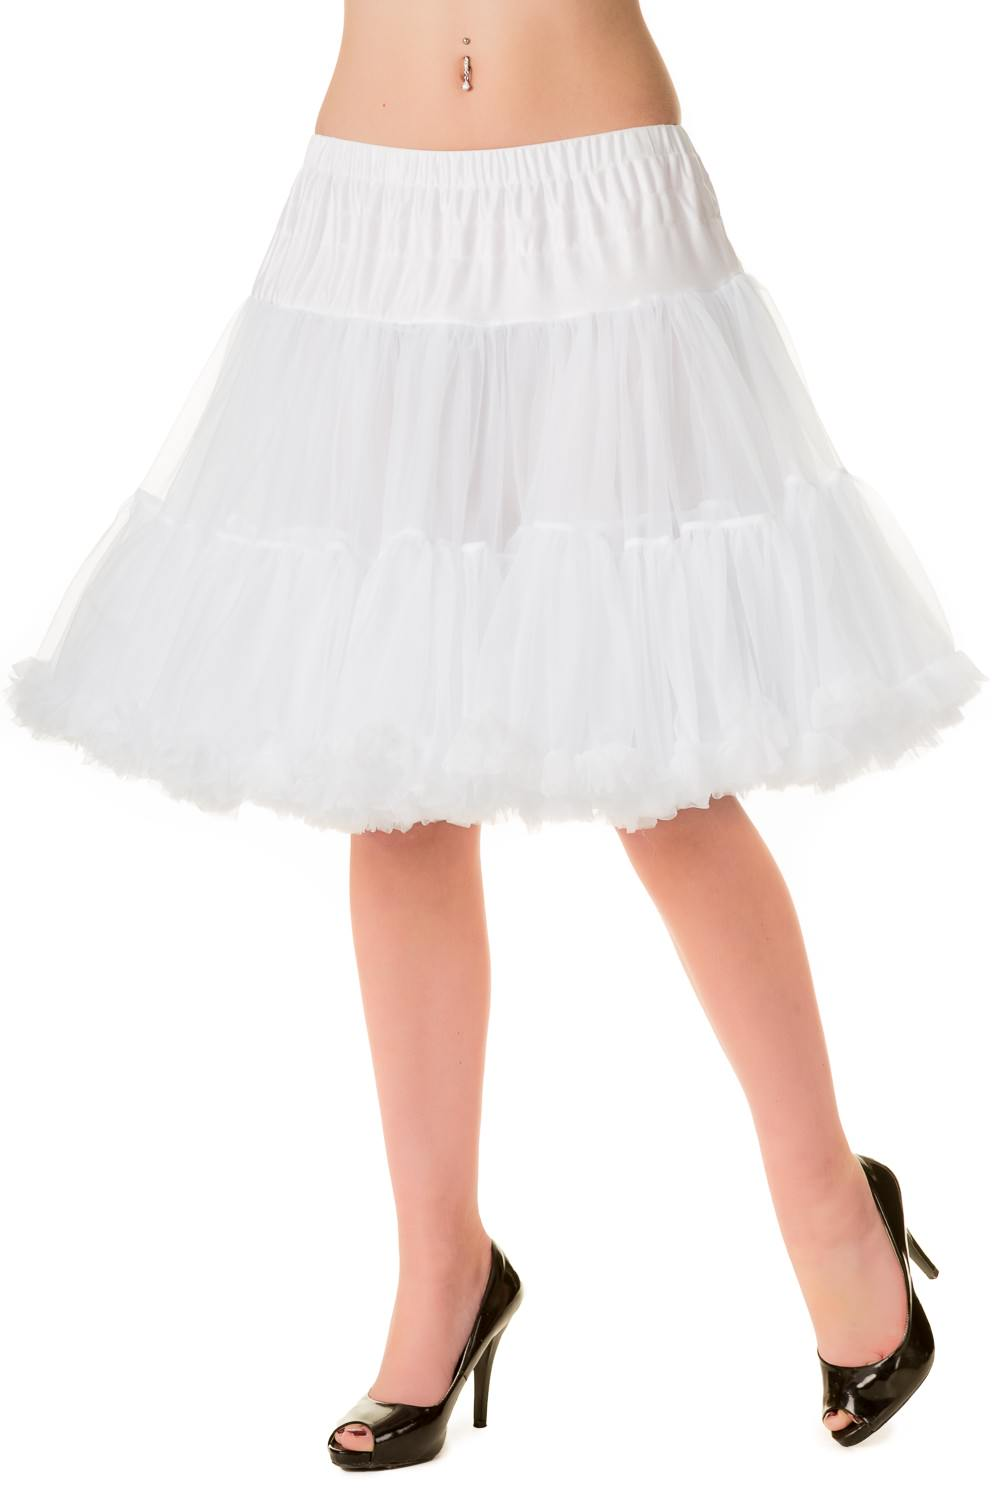 Banned Retro 50s Walkabout White Petticoat